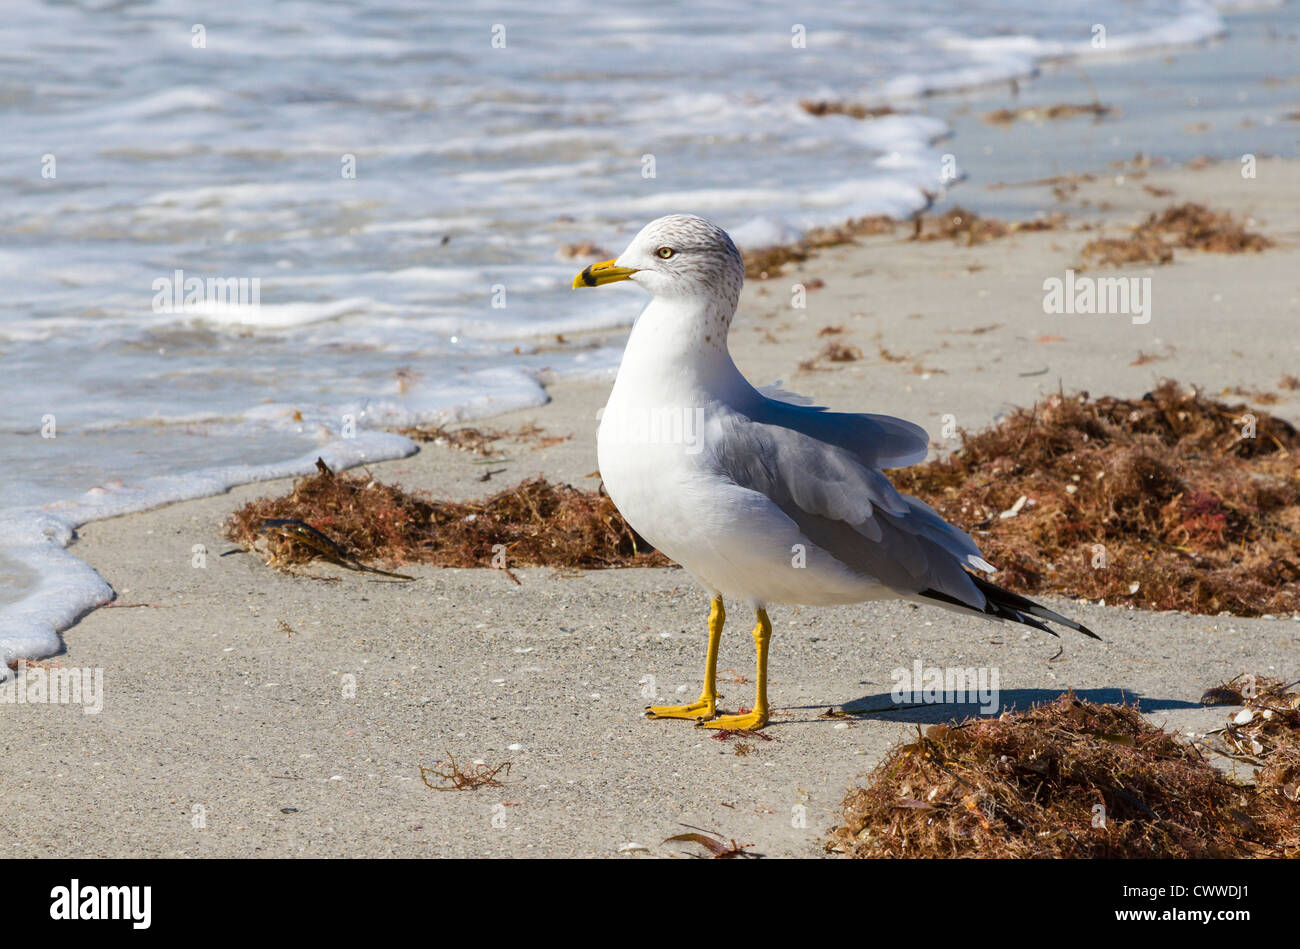 Seagull at waterline of sand beach at Reddington Shores, Florida - Stock Image